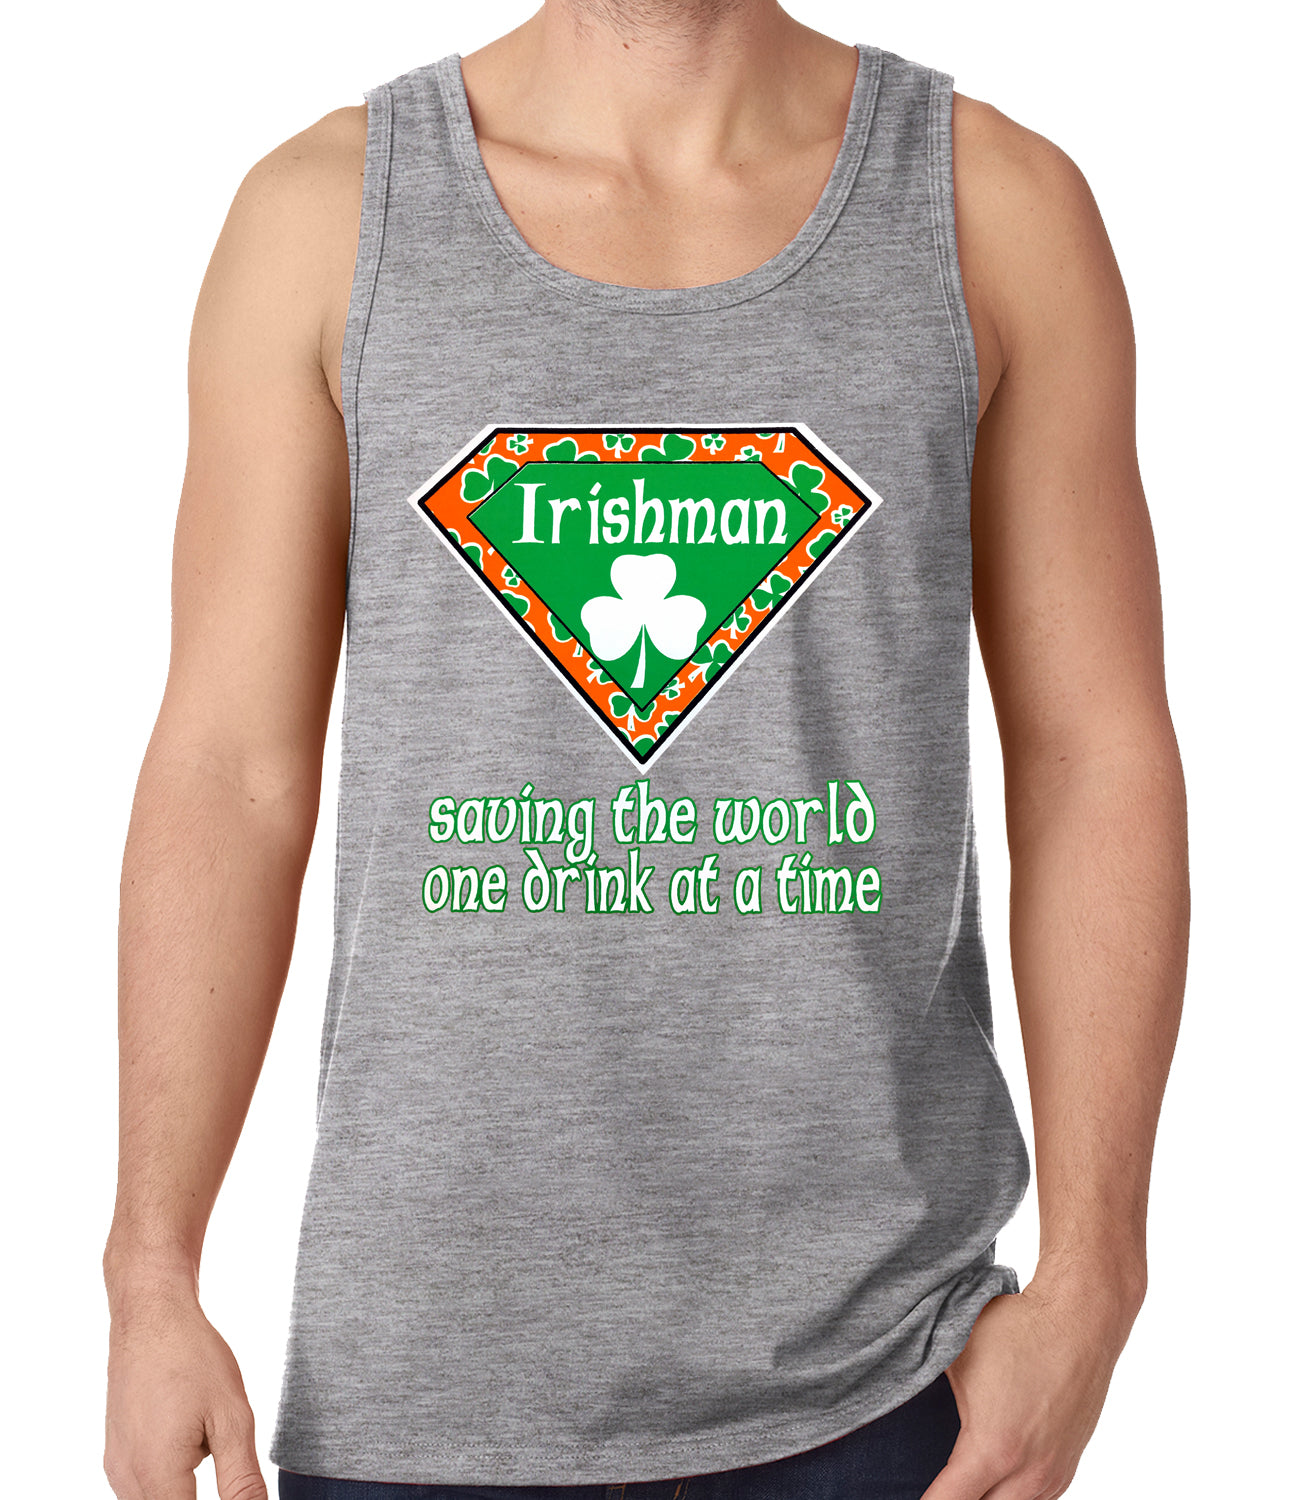 Irishman Saving The World One Drink At a Time Tank Top